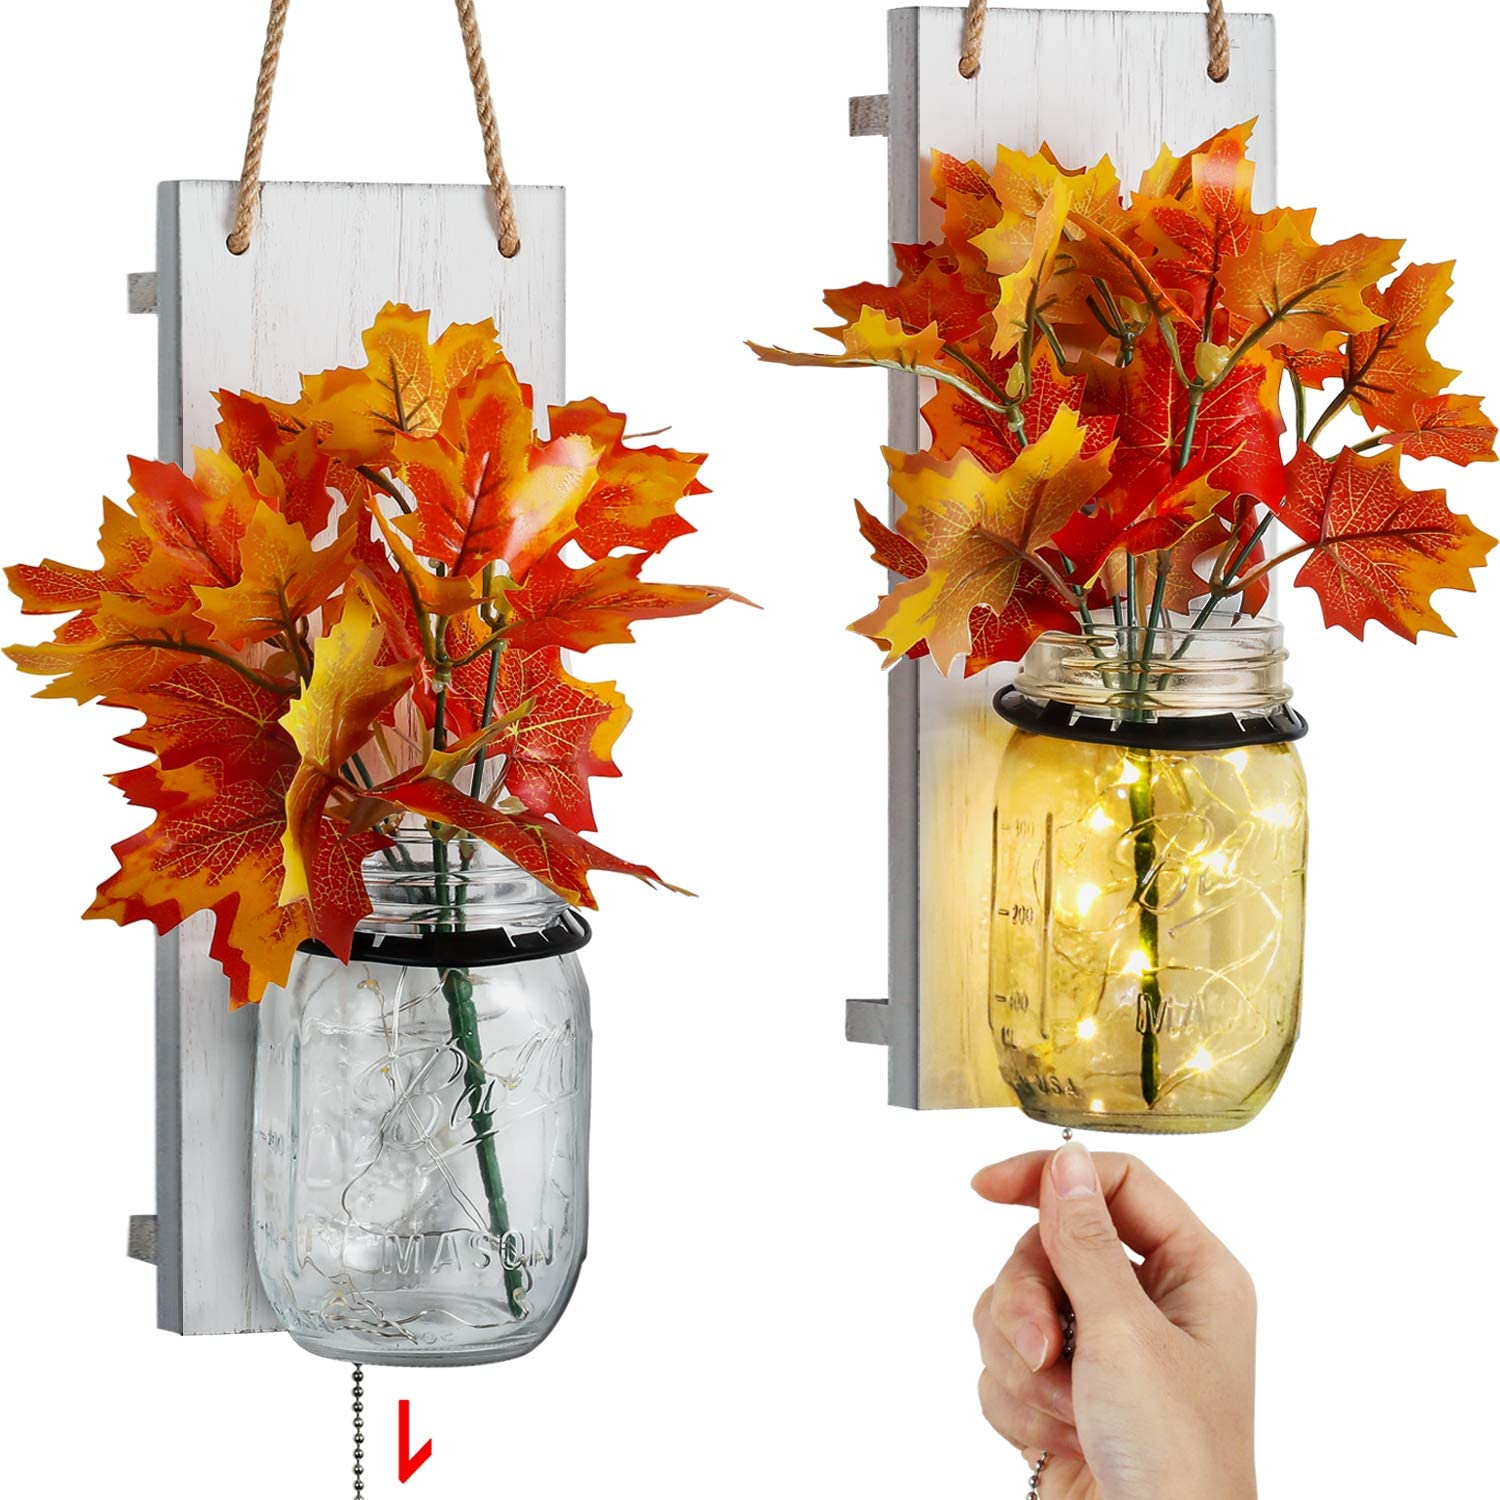 Lamps Light Fixtures Mason Jar Wall Sconce Silk Hydrangea And Led Strip Lights Design For Home Decoration Set Of 2 Rustic Home Decor With Pull Chain Switch Tj Moree Rustic Wall Sconce